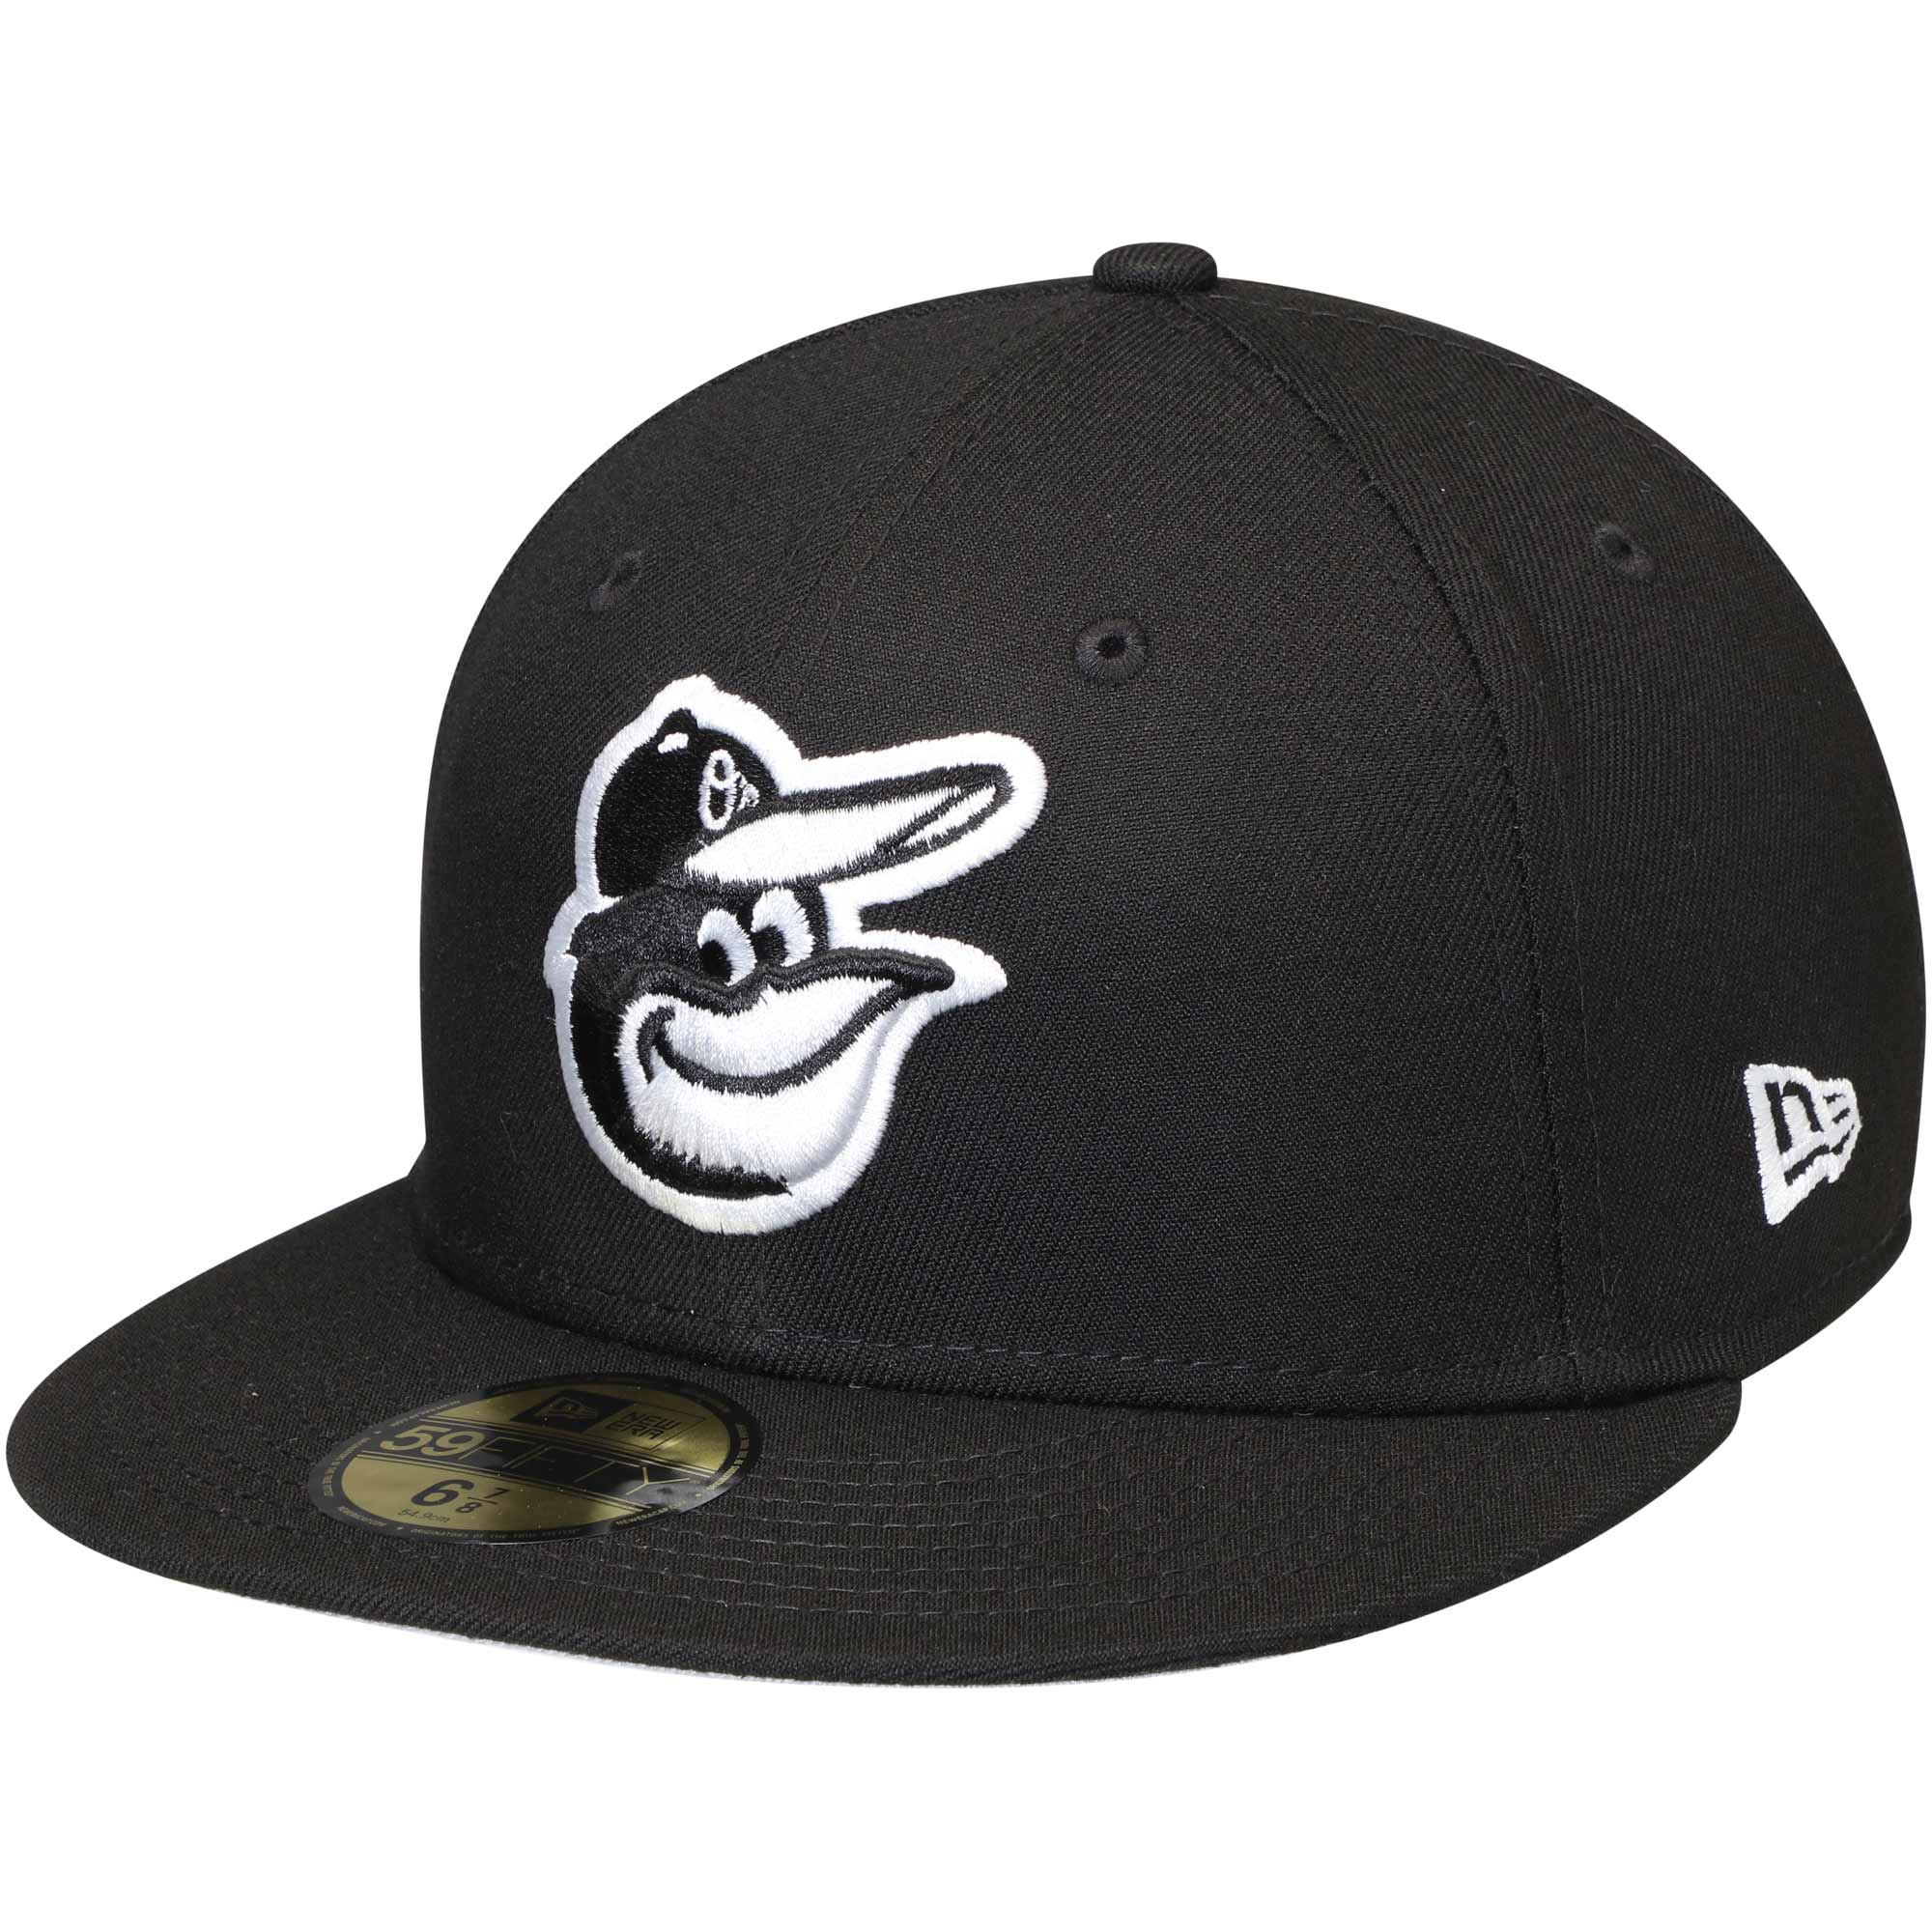 Baltimore Orioles New Era 59FIFTY Fitted Hat - Black